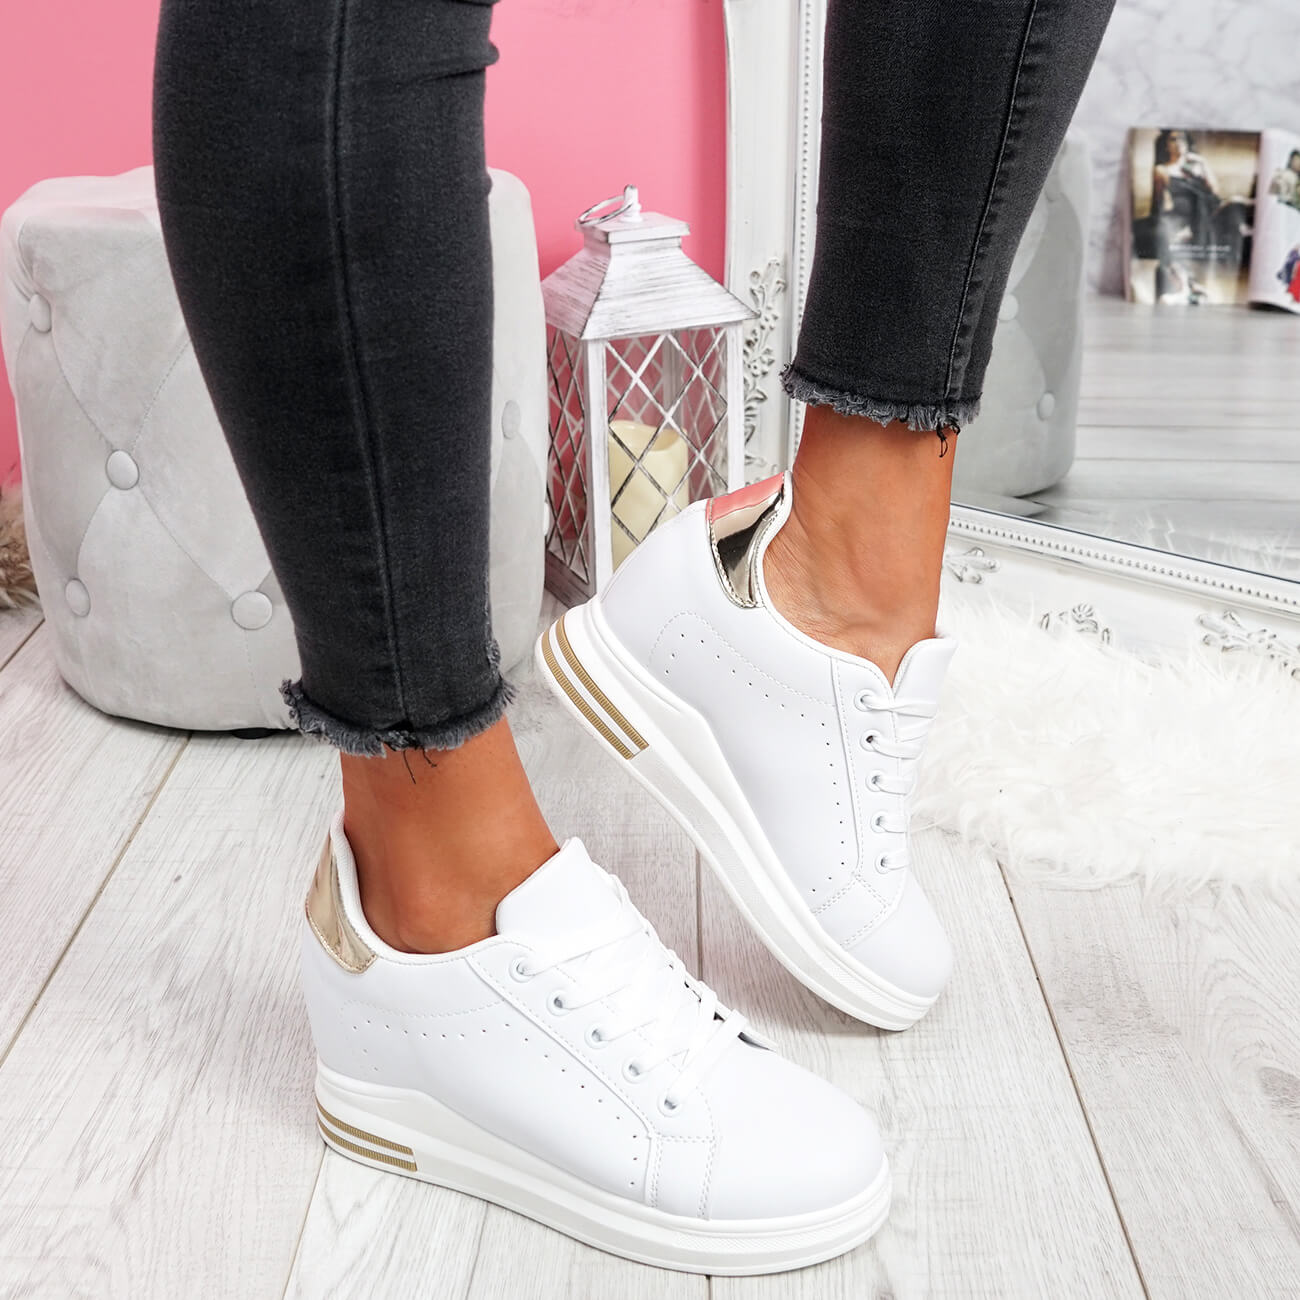 WOMENS-LADIES-LACE-UP-WEDGE-TRAINERS-HEEL-SNEAKERS-SHINY-PARTY-WOMEN-SHOES thumbnail 28